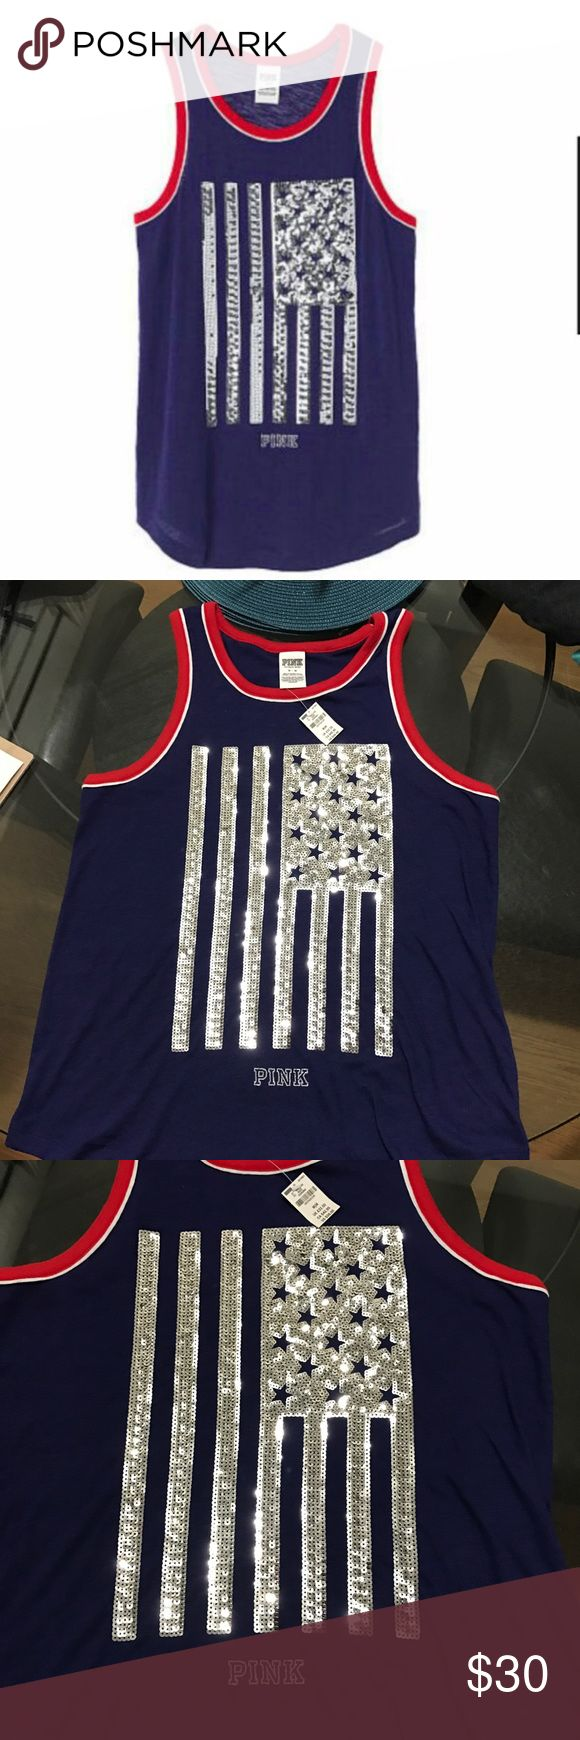 Victoria's Secret PINK Americana bling tank NWT PRICE IS FIRM! Offers will be ignored!  Victoria's Secret Pink Americana 4th of July tank top Bling sequins flag design on front.   Runs oversized  Size MEDIUM  Retail $36.95 PINK Victoria's Secret Tops Tank Tops